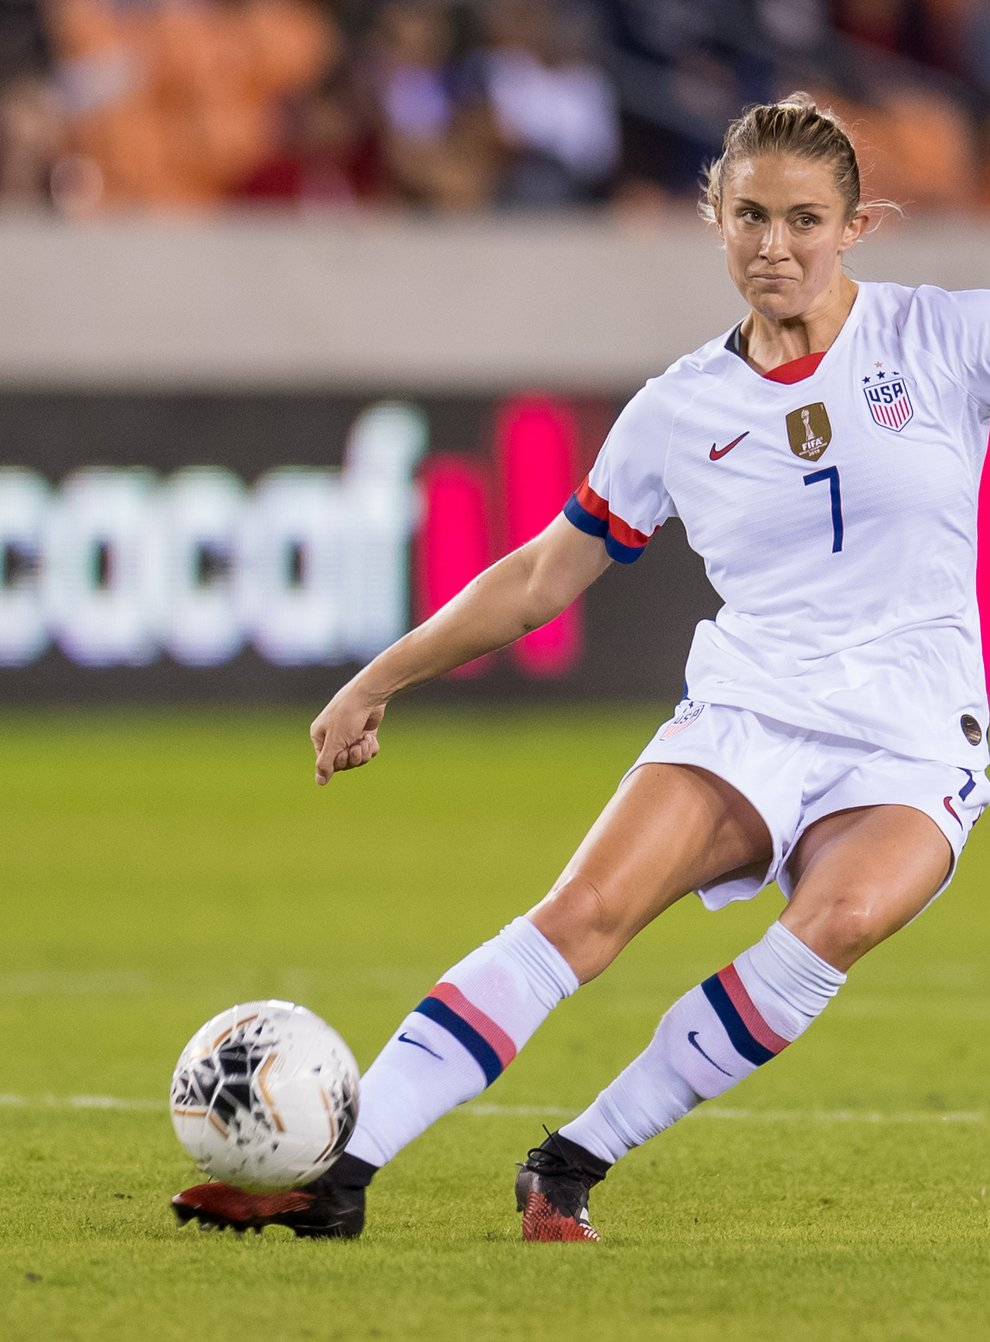 <p>Dahlkemper is reportedly moving to the Women's Super League</p>